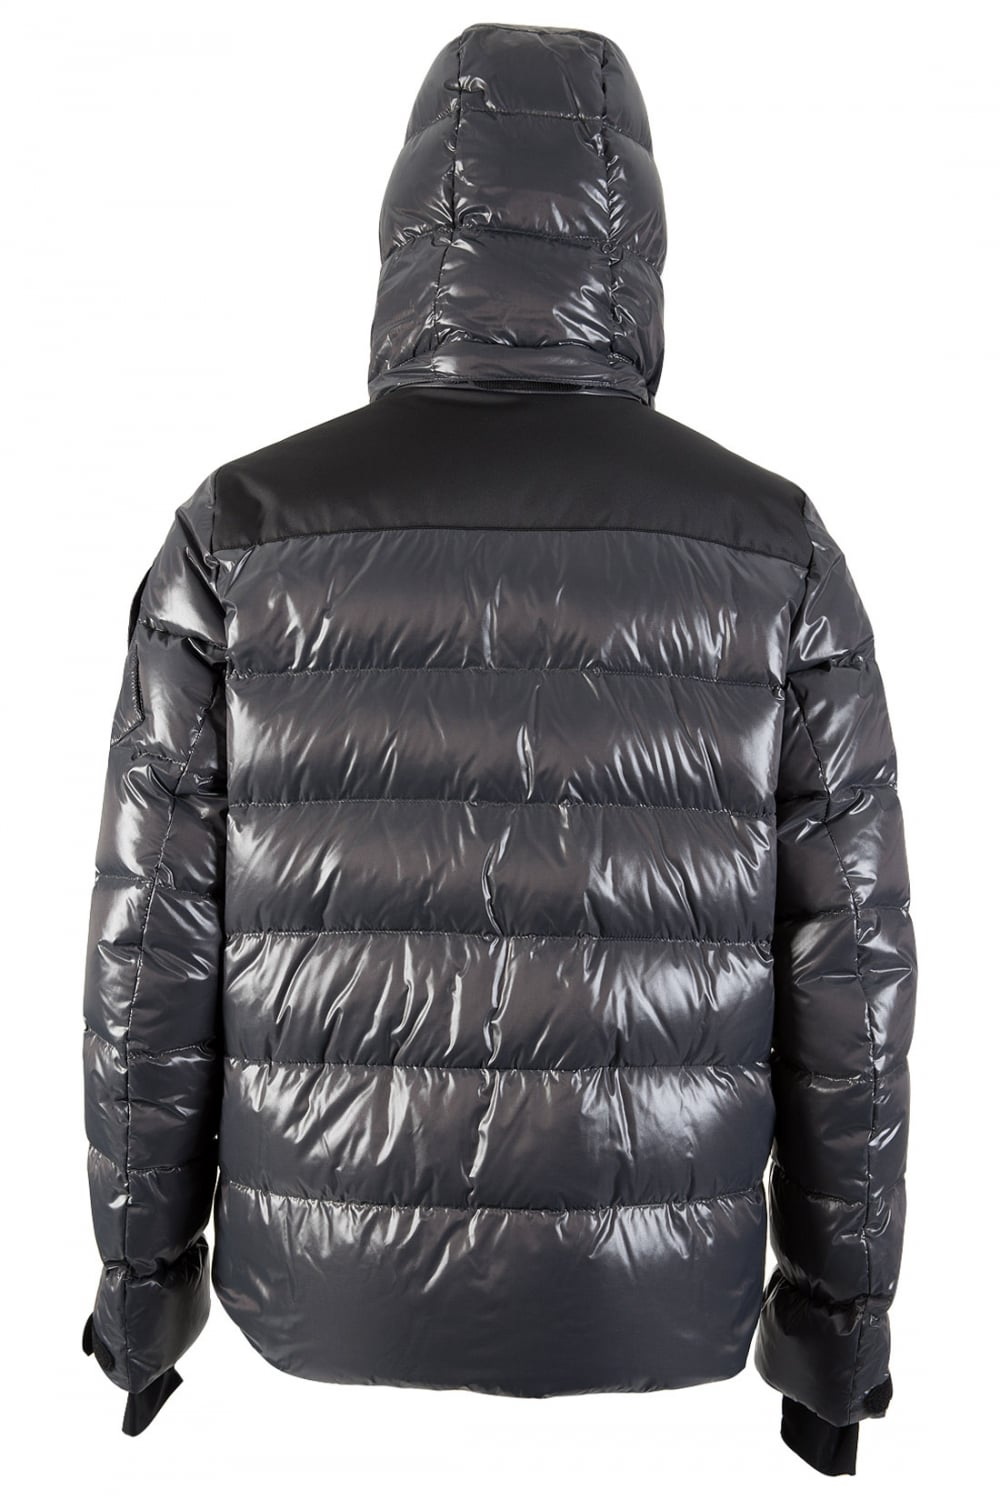 Moncler Grenoble Sancy Moncler From Circle Fashion Uk